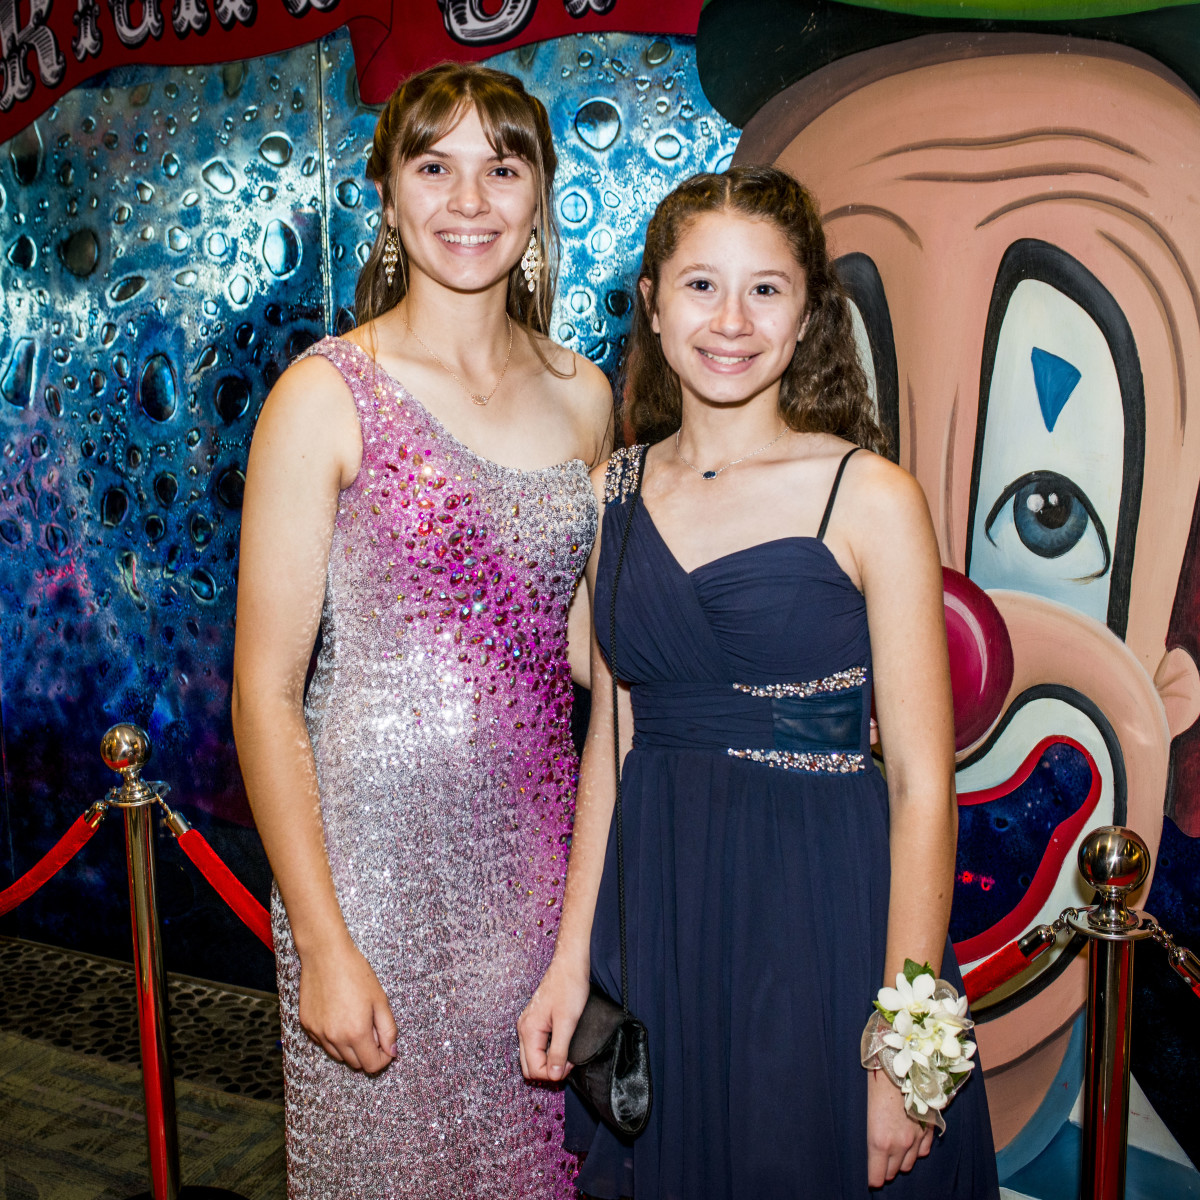 MD Anderson Prom Party Palooza